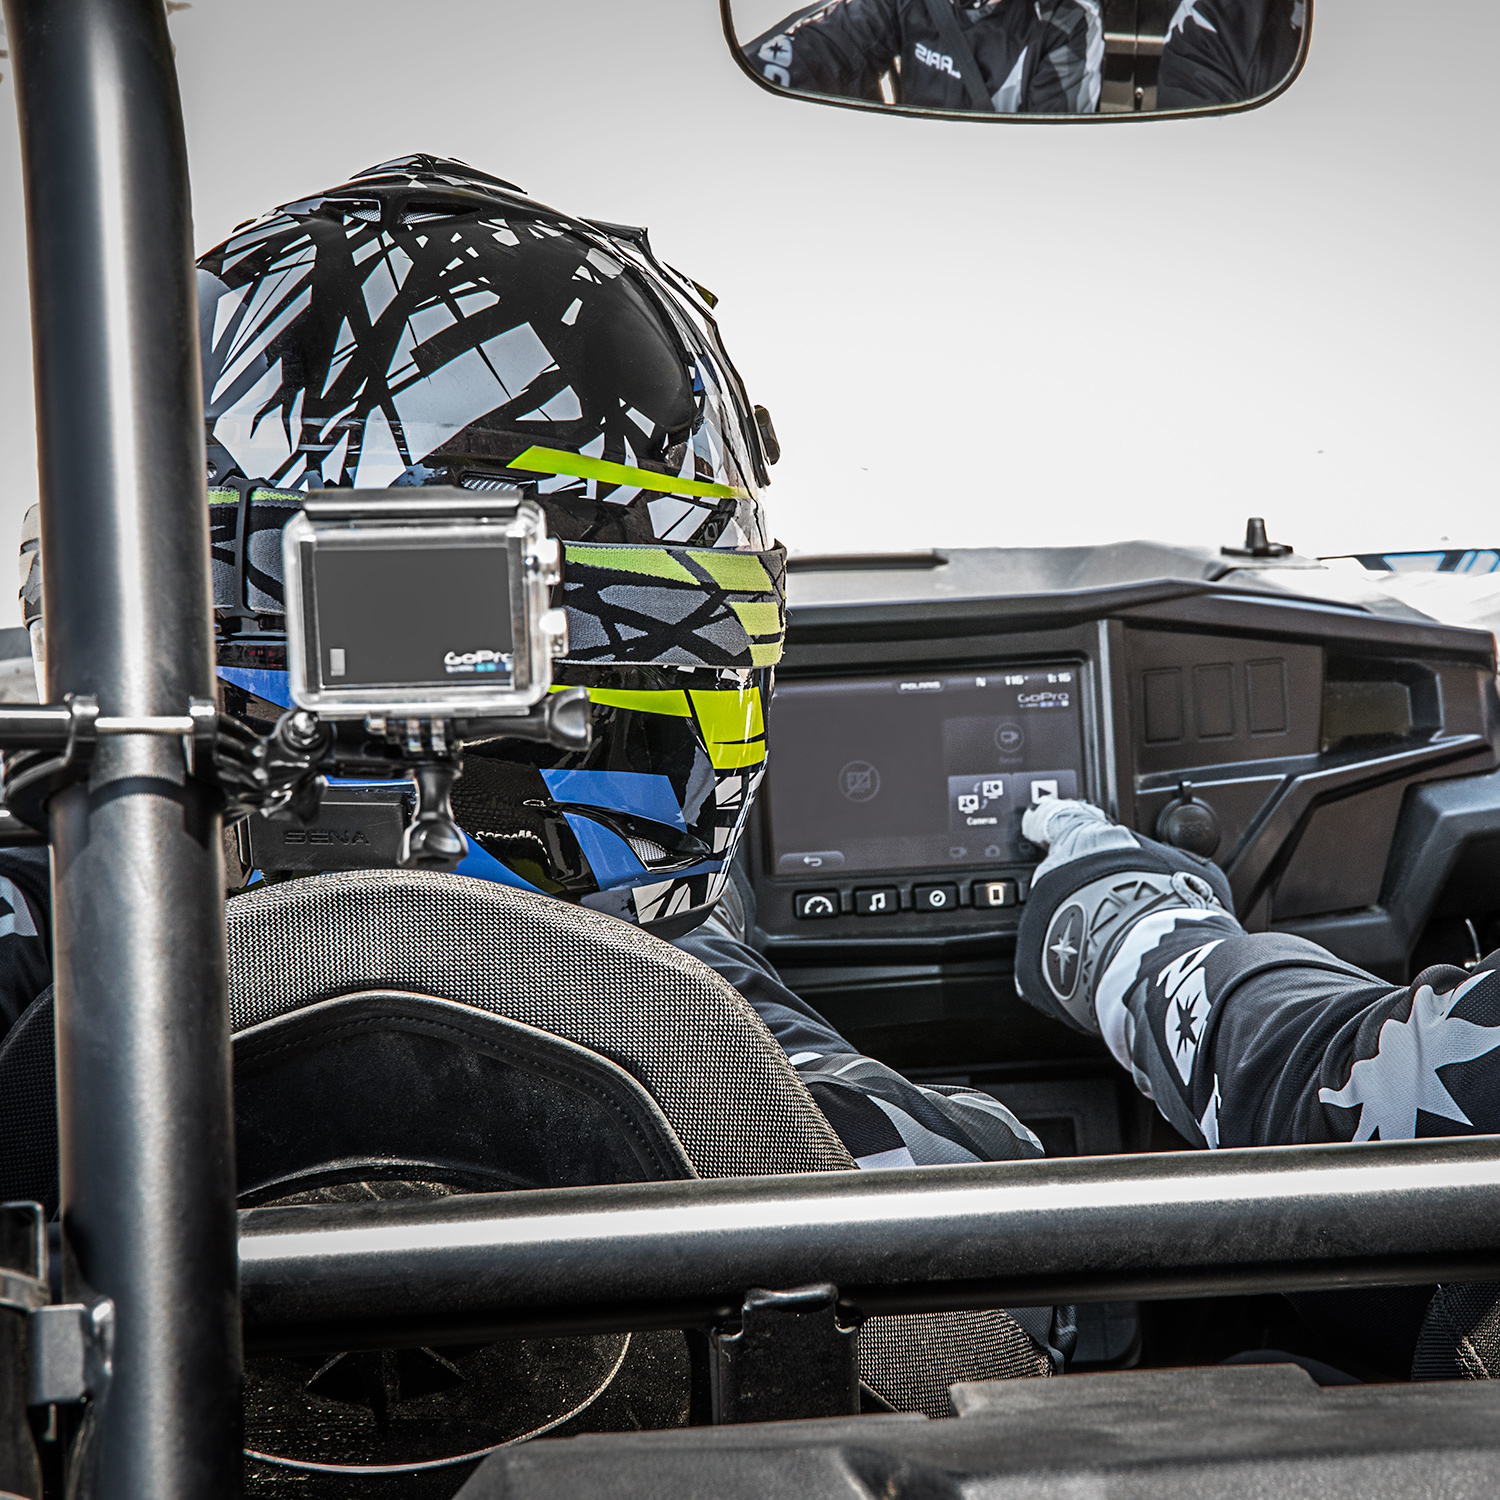 Polaris RIDE COMMAND - Changing the way we Off-Road - UTV Guide